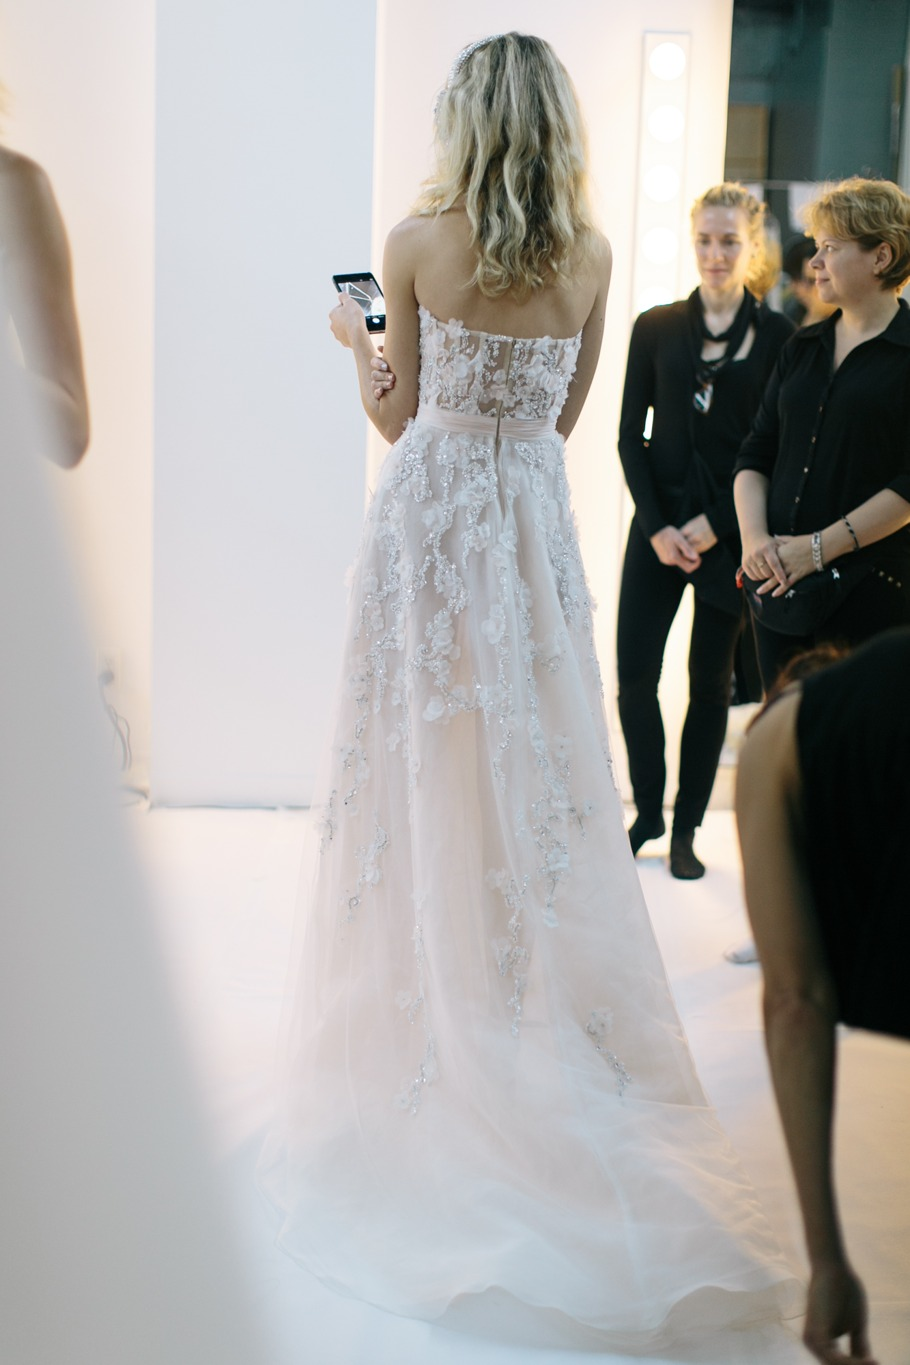 model checking her phone before bridal fashion show